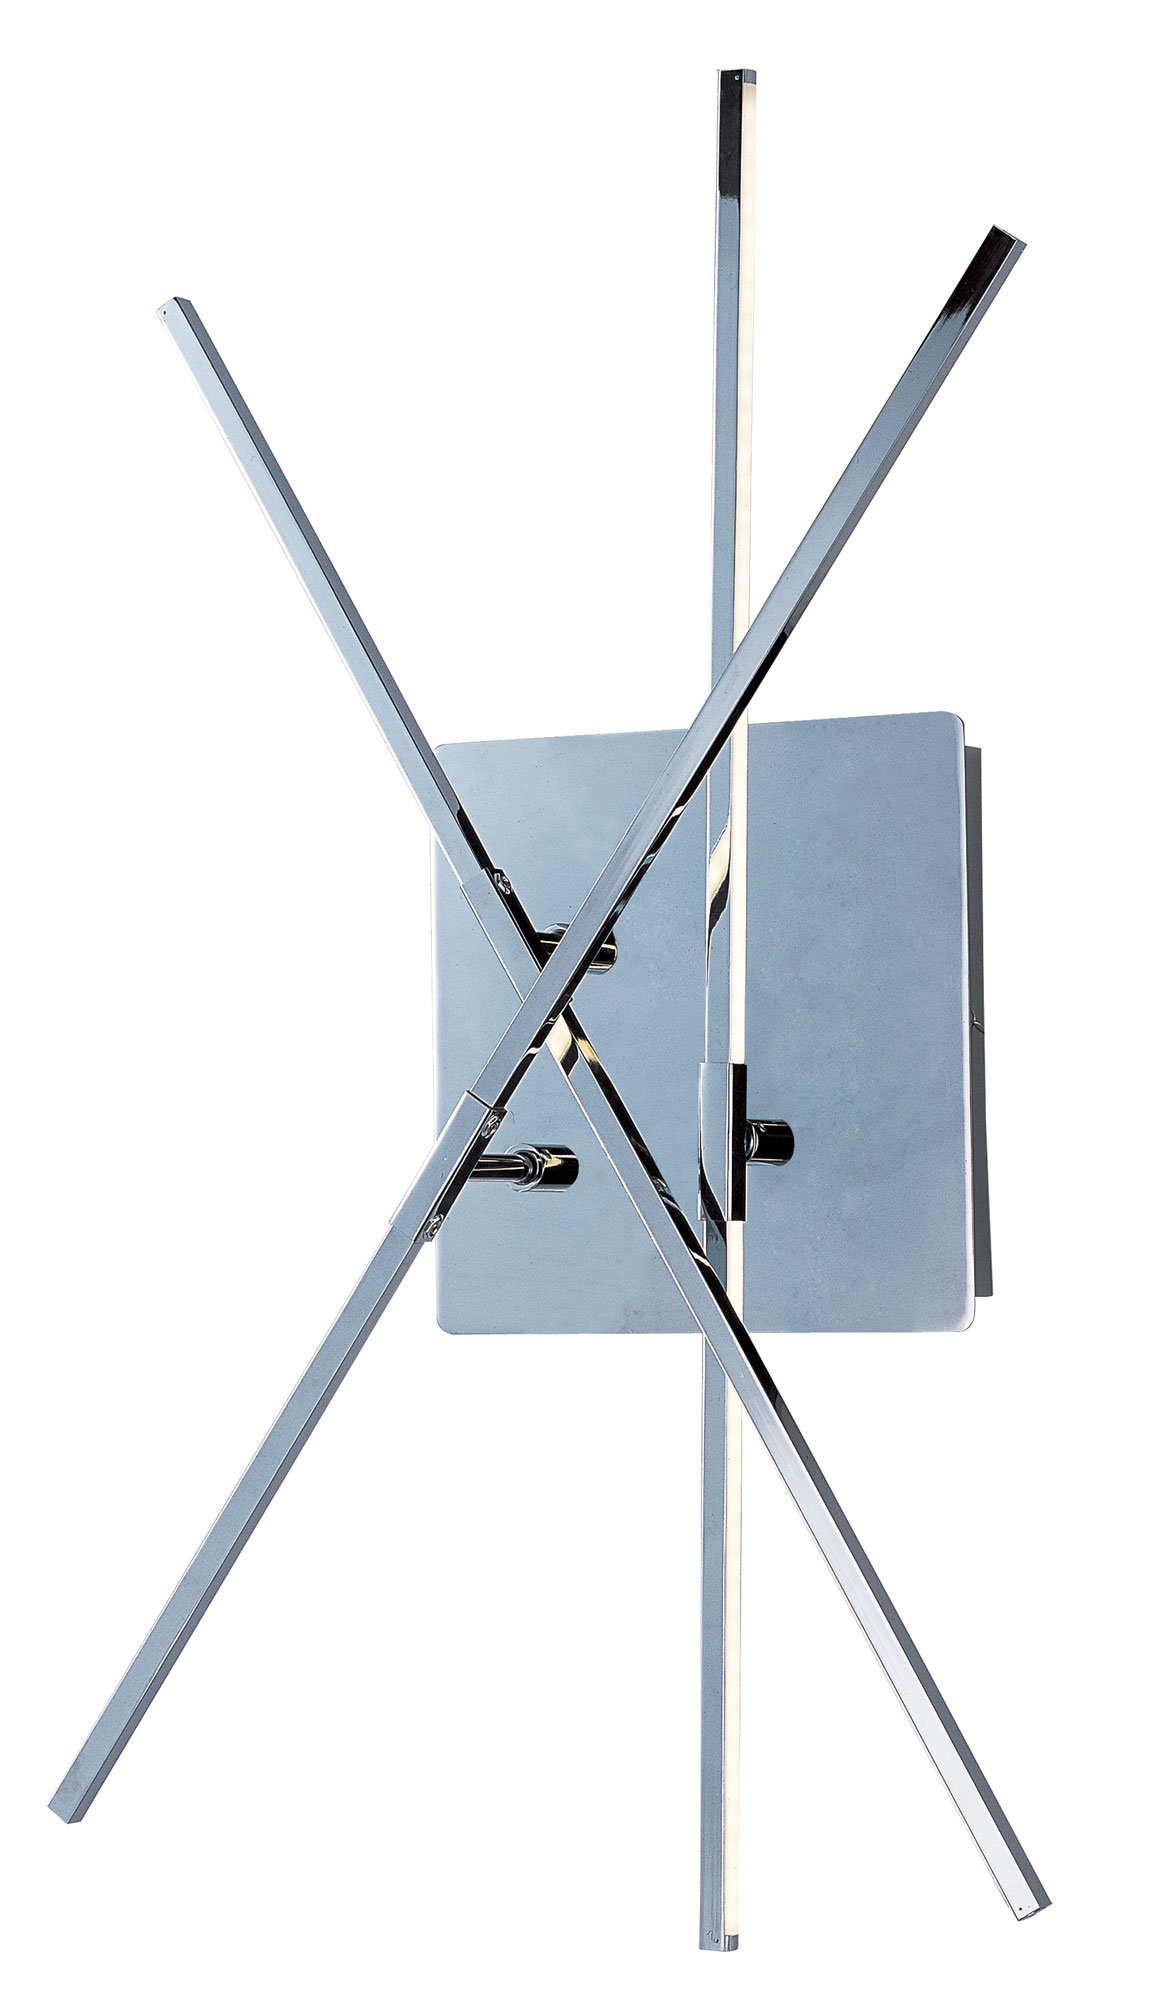 Kriss kross wall sconce by et e pc